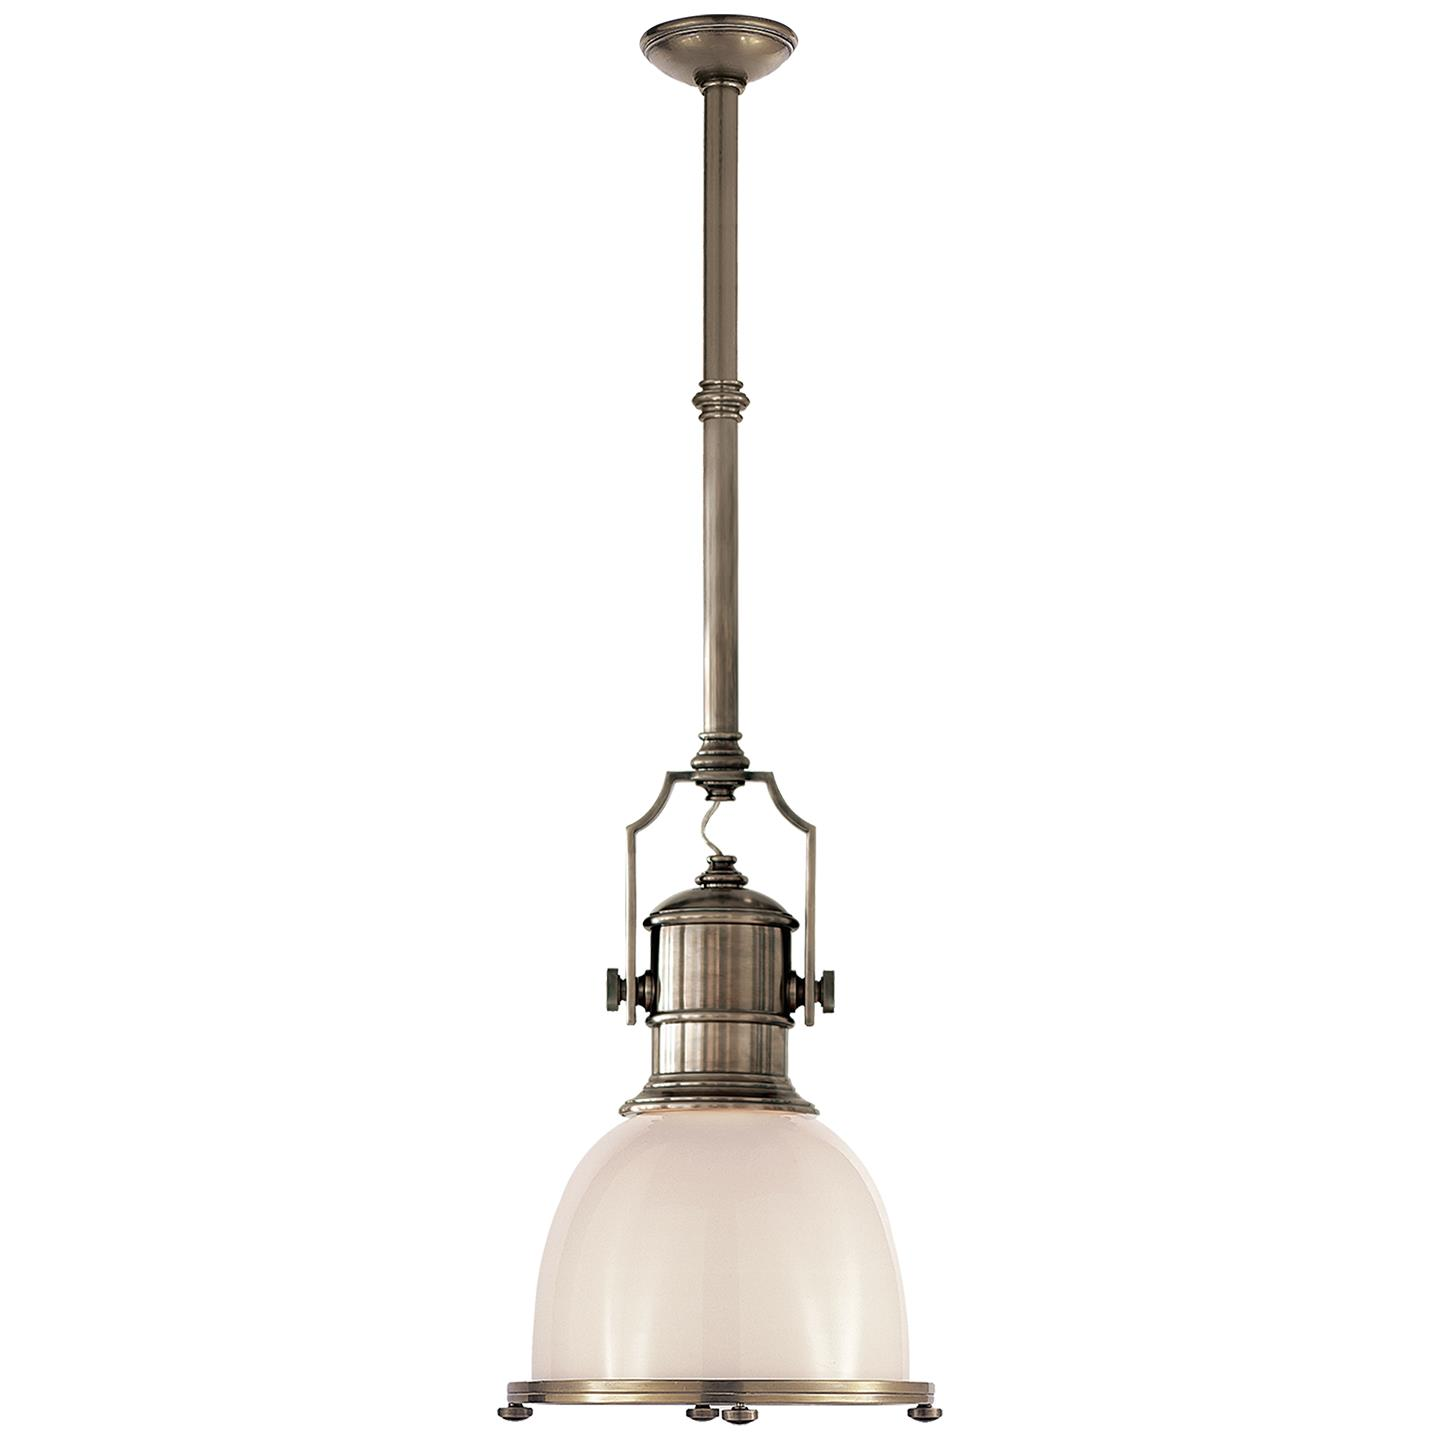 Country Industrial Small Pendant